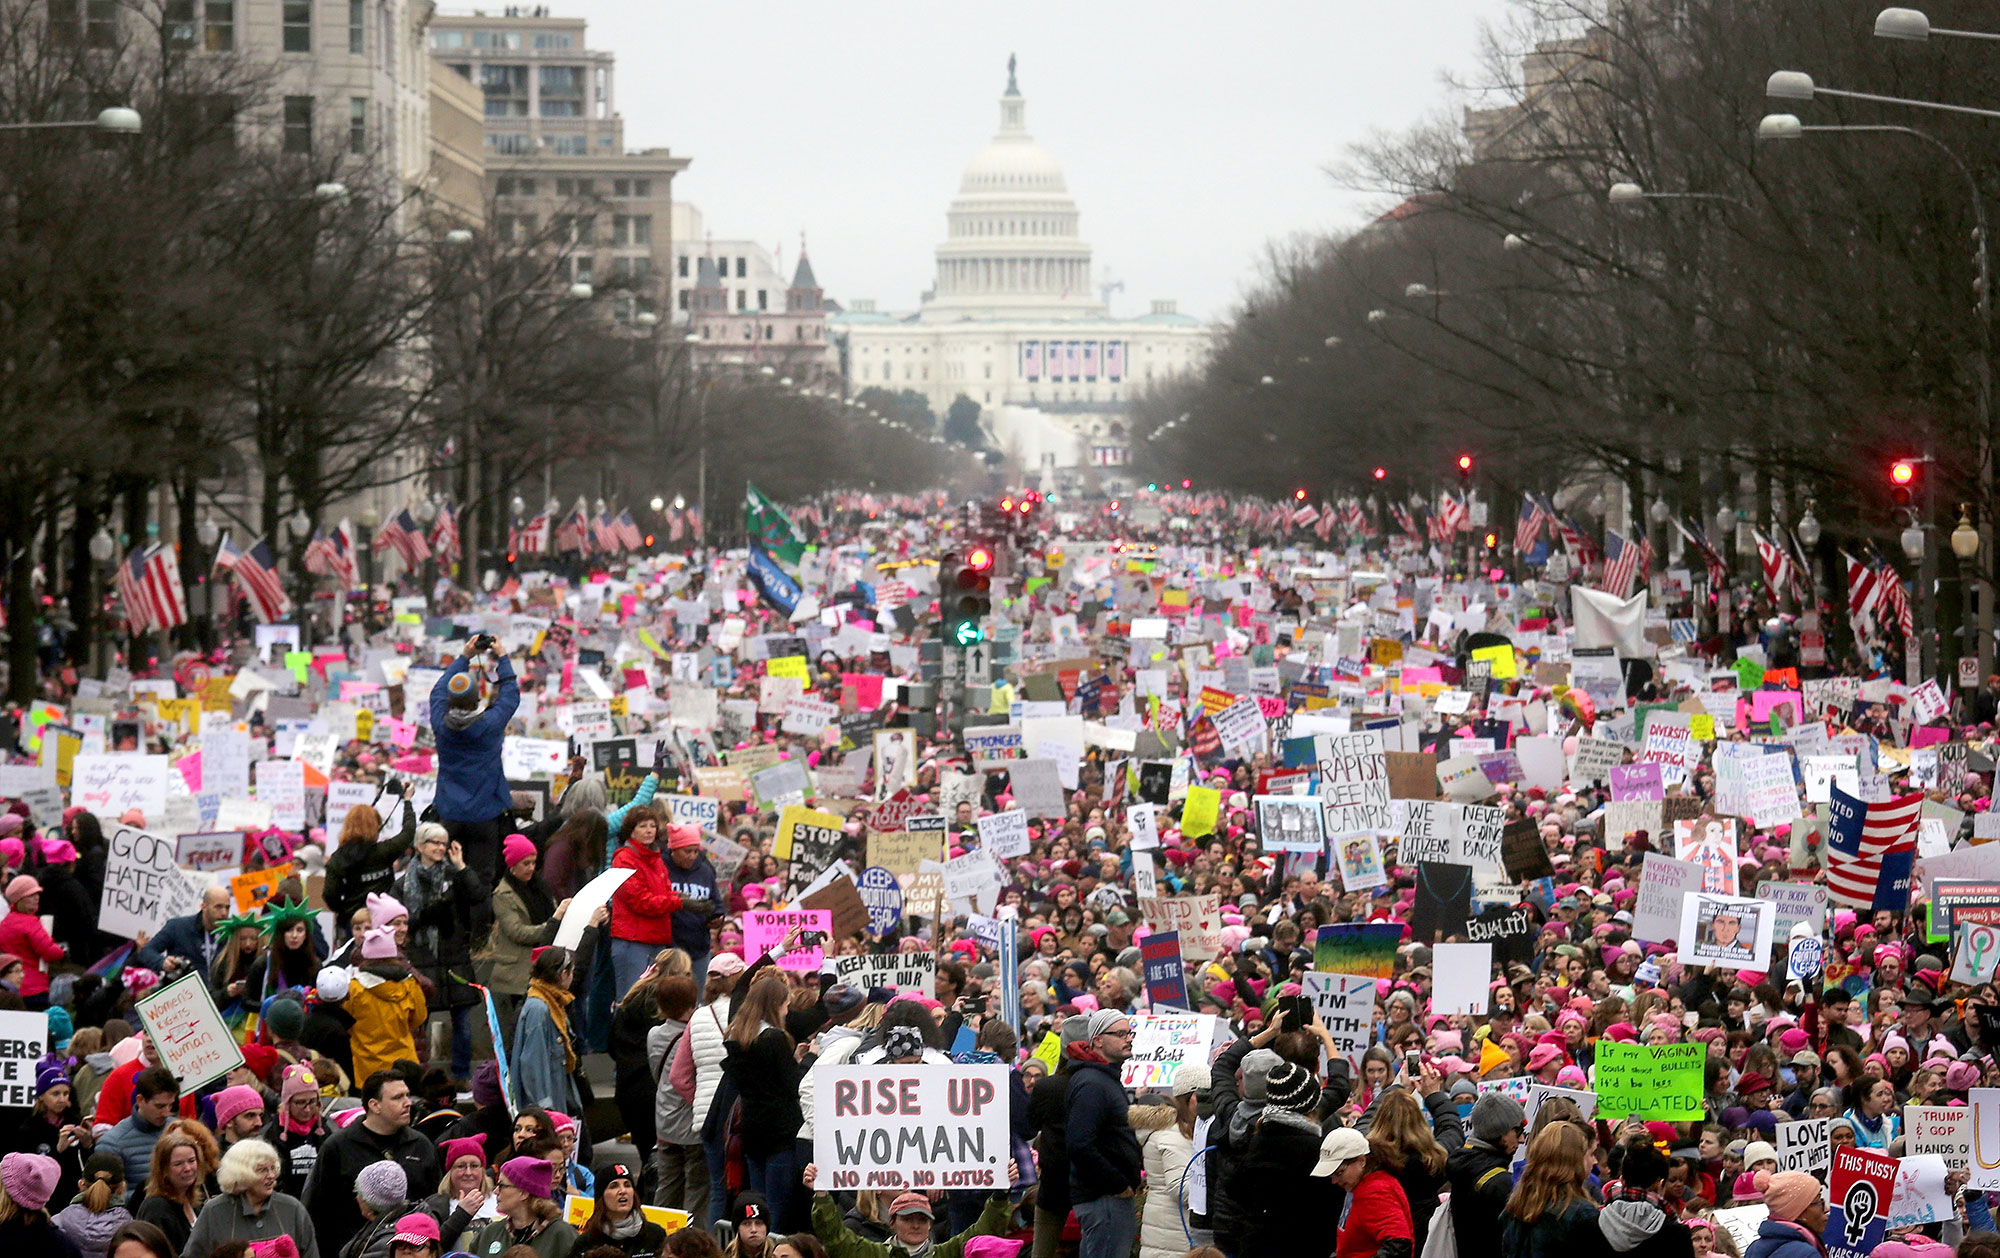 Protesters walk during the Women's March on Washington, with the U.S. Capitol in the background, on Jan. 21, 2017.